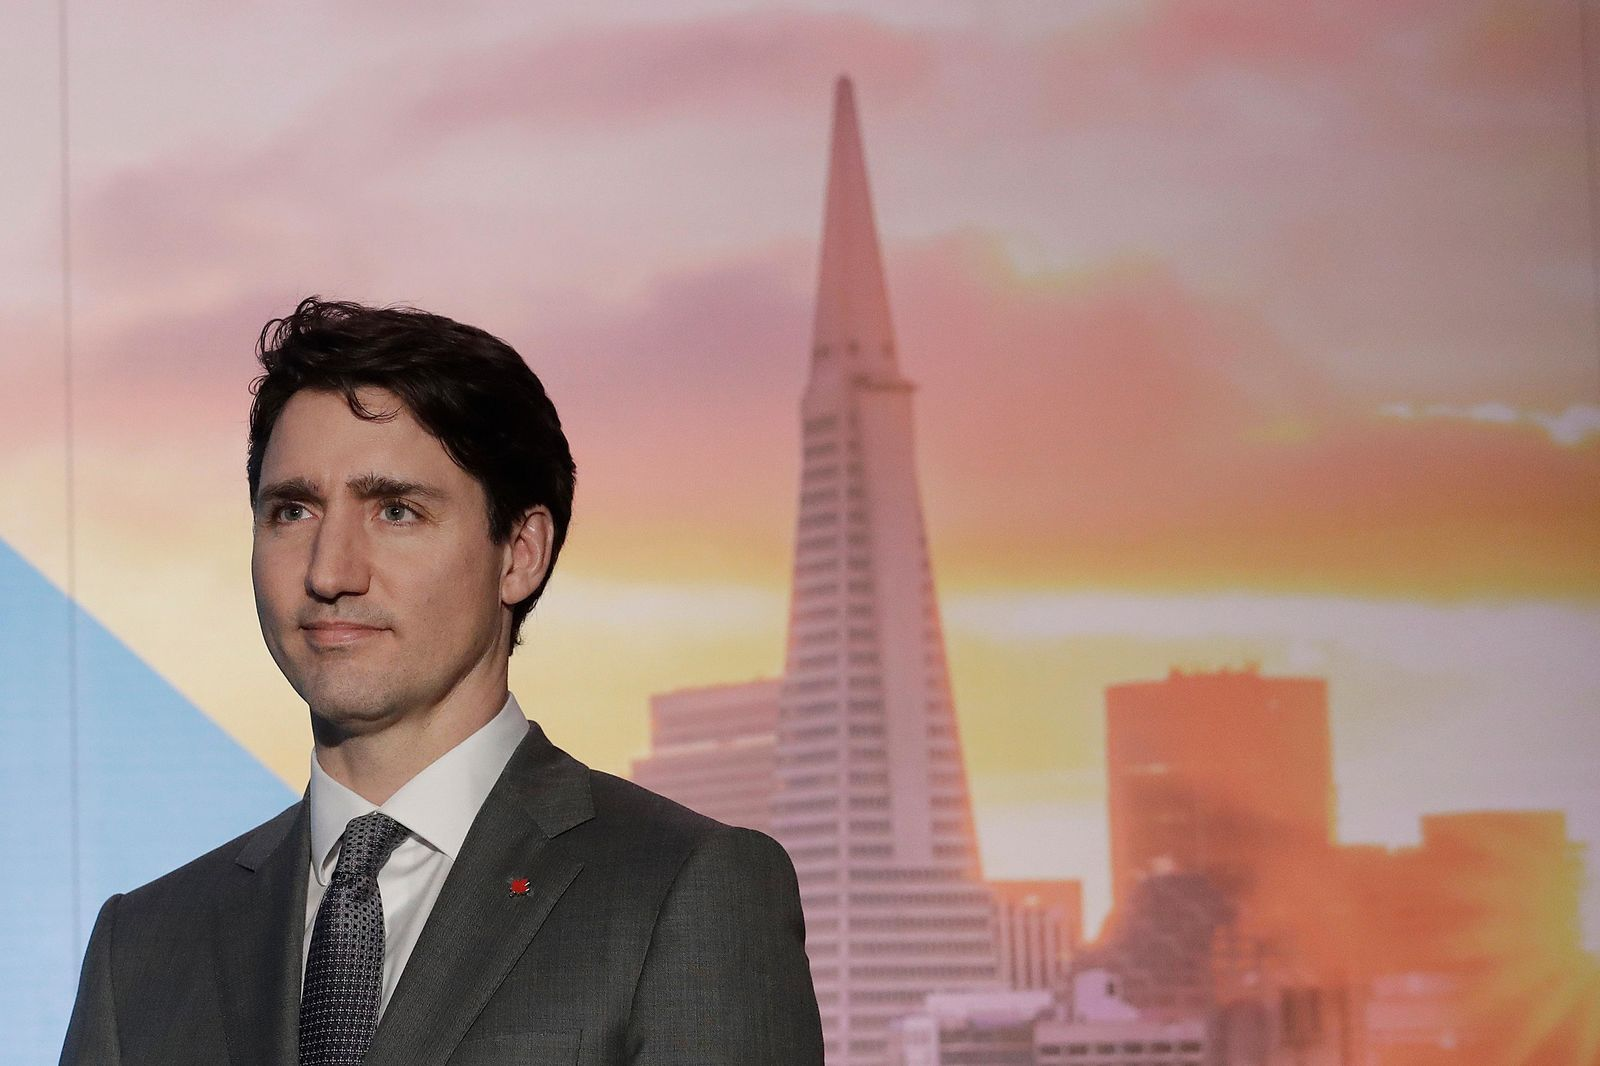 FILE - In this Feb. 8, 2018, photo, with an image of the San Fransisco skyline in the background, Canada's Prime Minister Justin Trudeau waits to speak at the AppDirect office in San Francisco.{ } (AP Photo/Jeff Chiu, File)